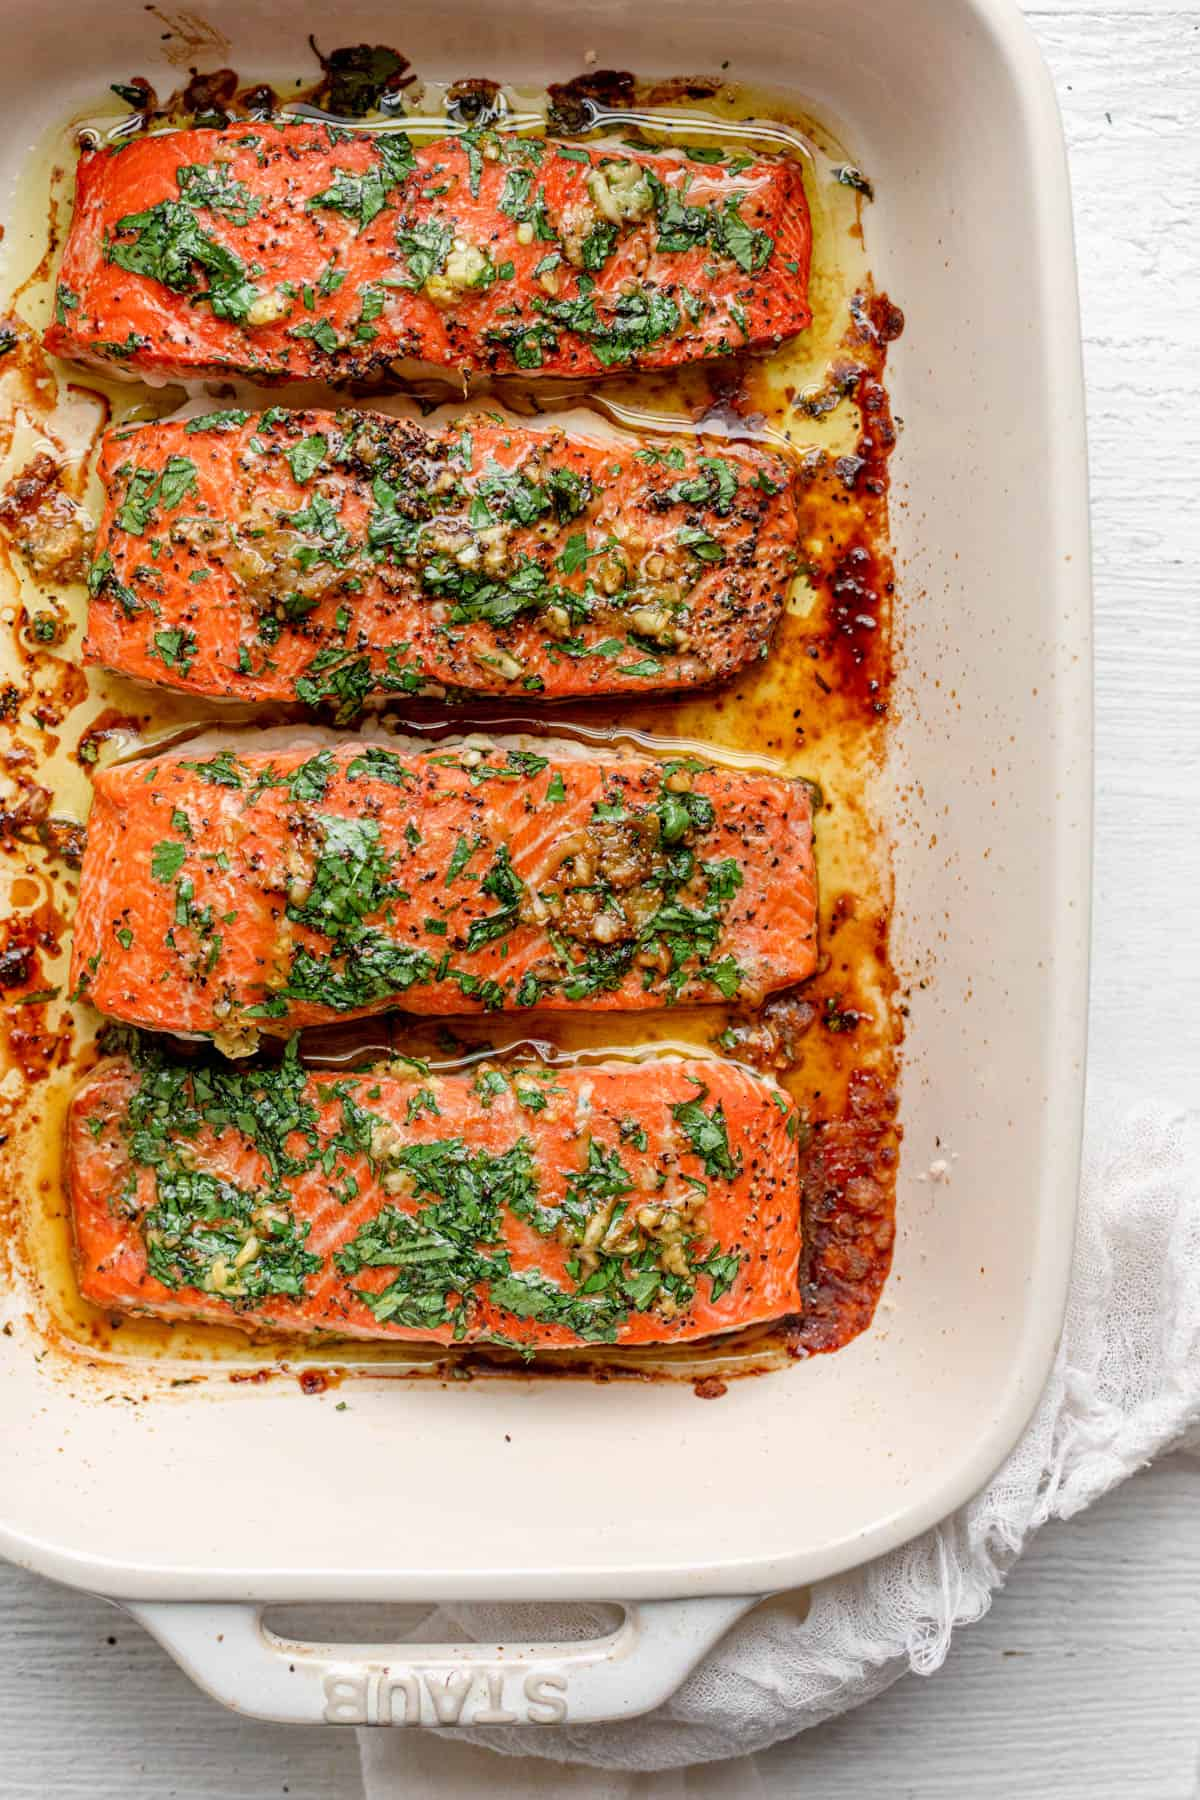 The oven cooked salmon after it's done cooking topped with garlic and cilantro in an off-white rectangle baking dish